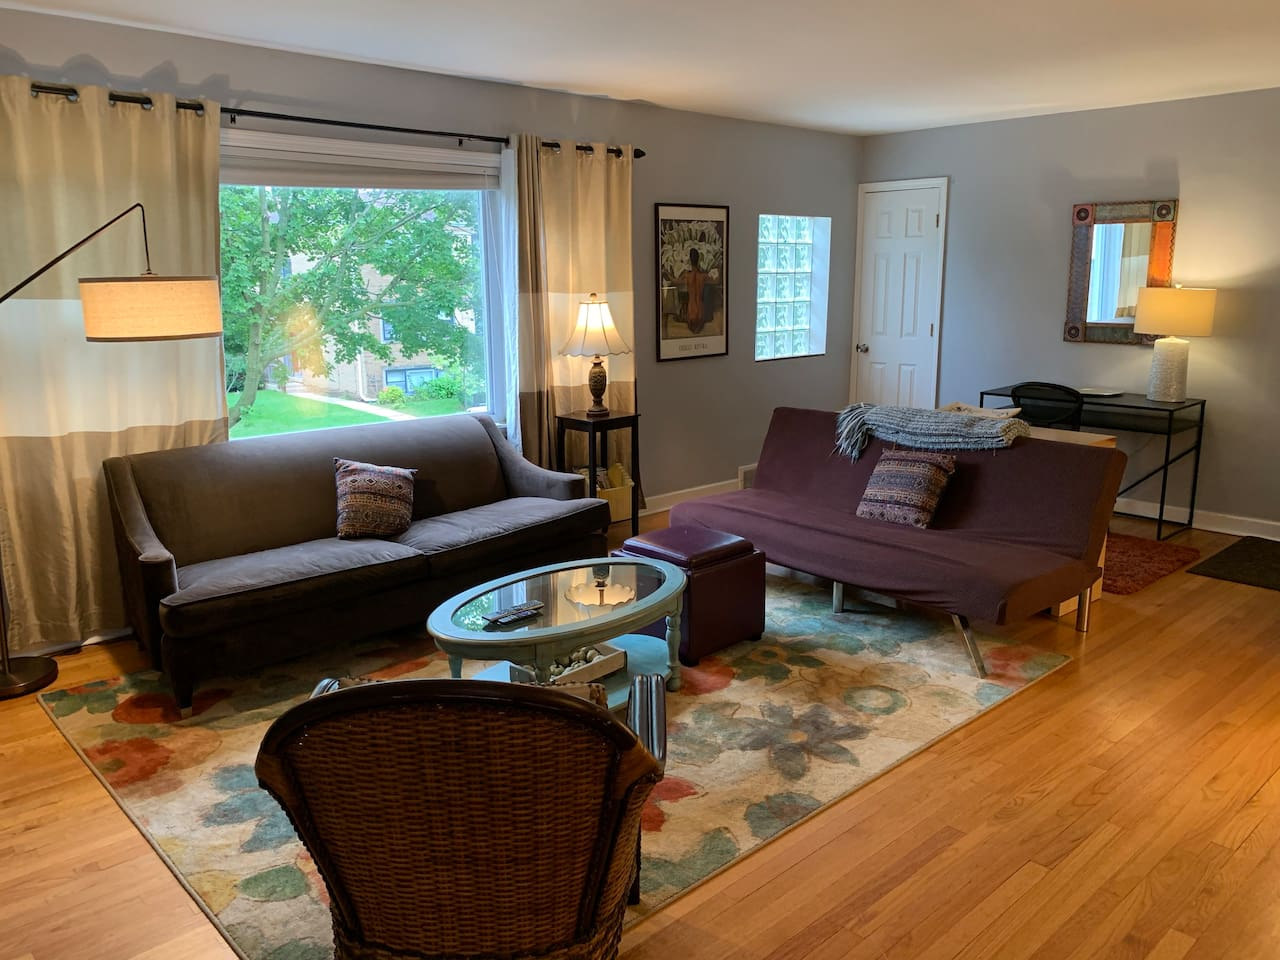 Large, sunny apartment in central Evanston with easy access to Chicago.